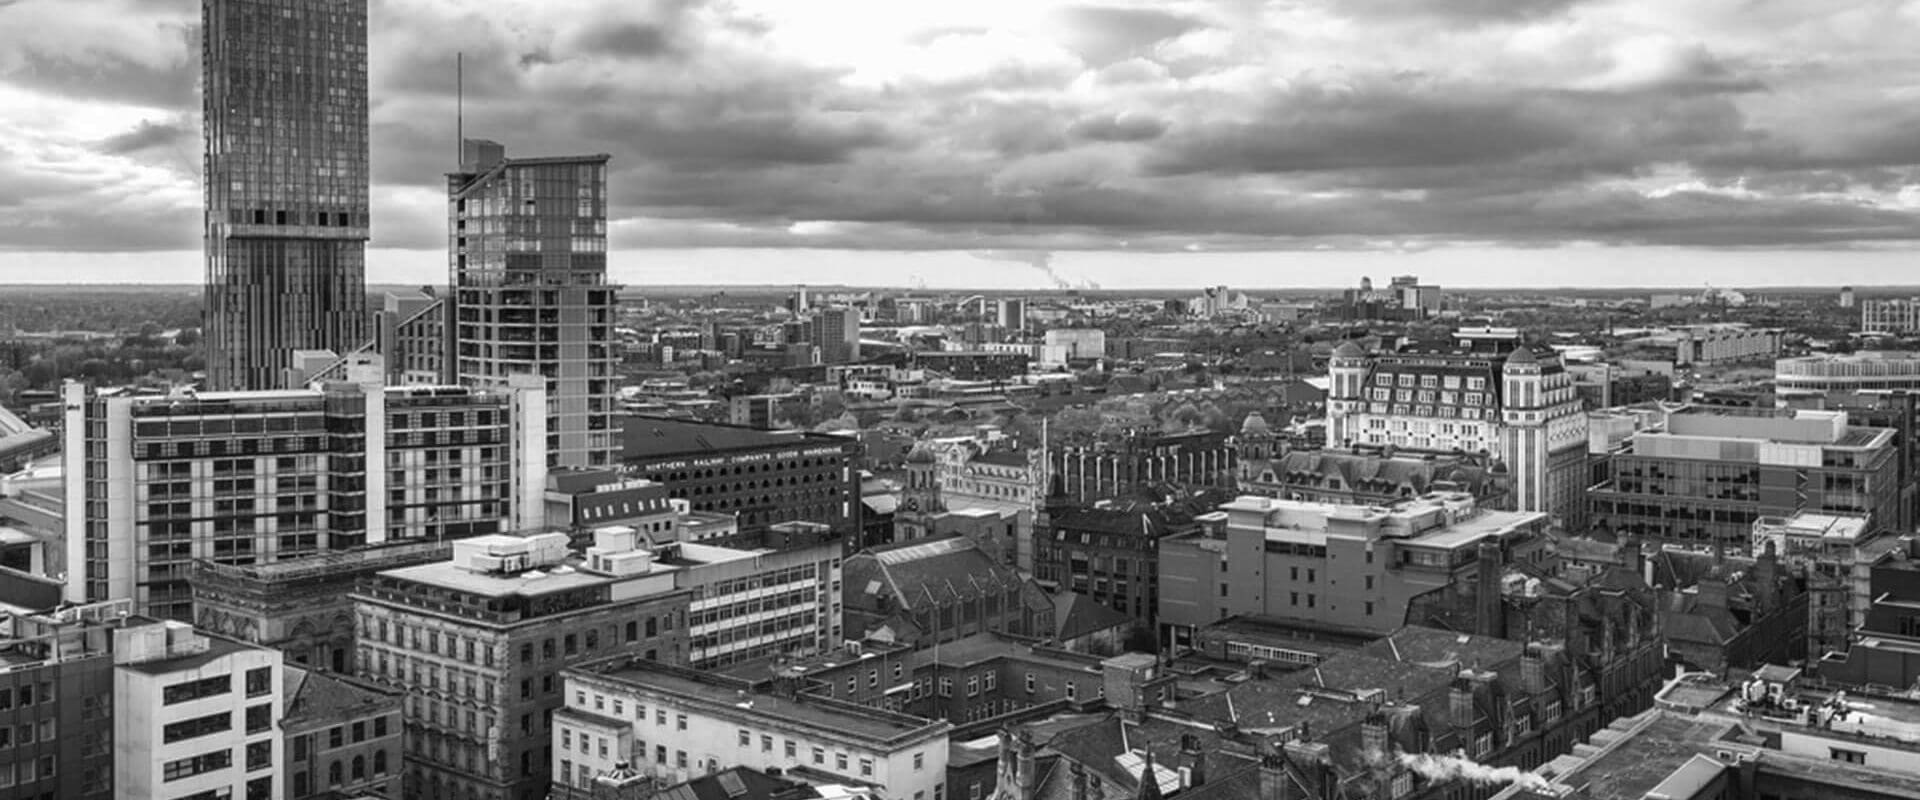 INVEST-IN-PROPERTY-IN-MANCHESTER